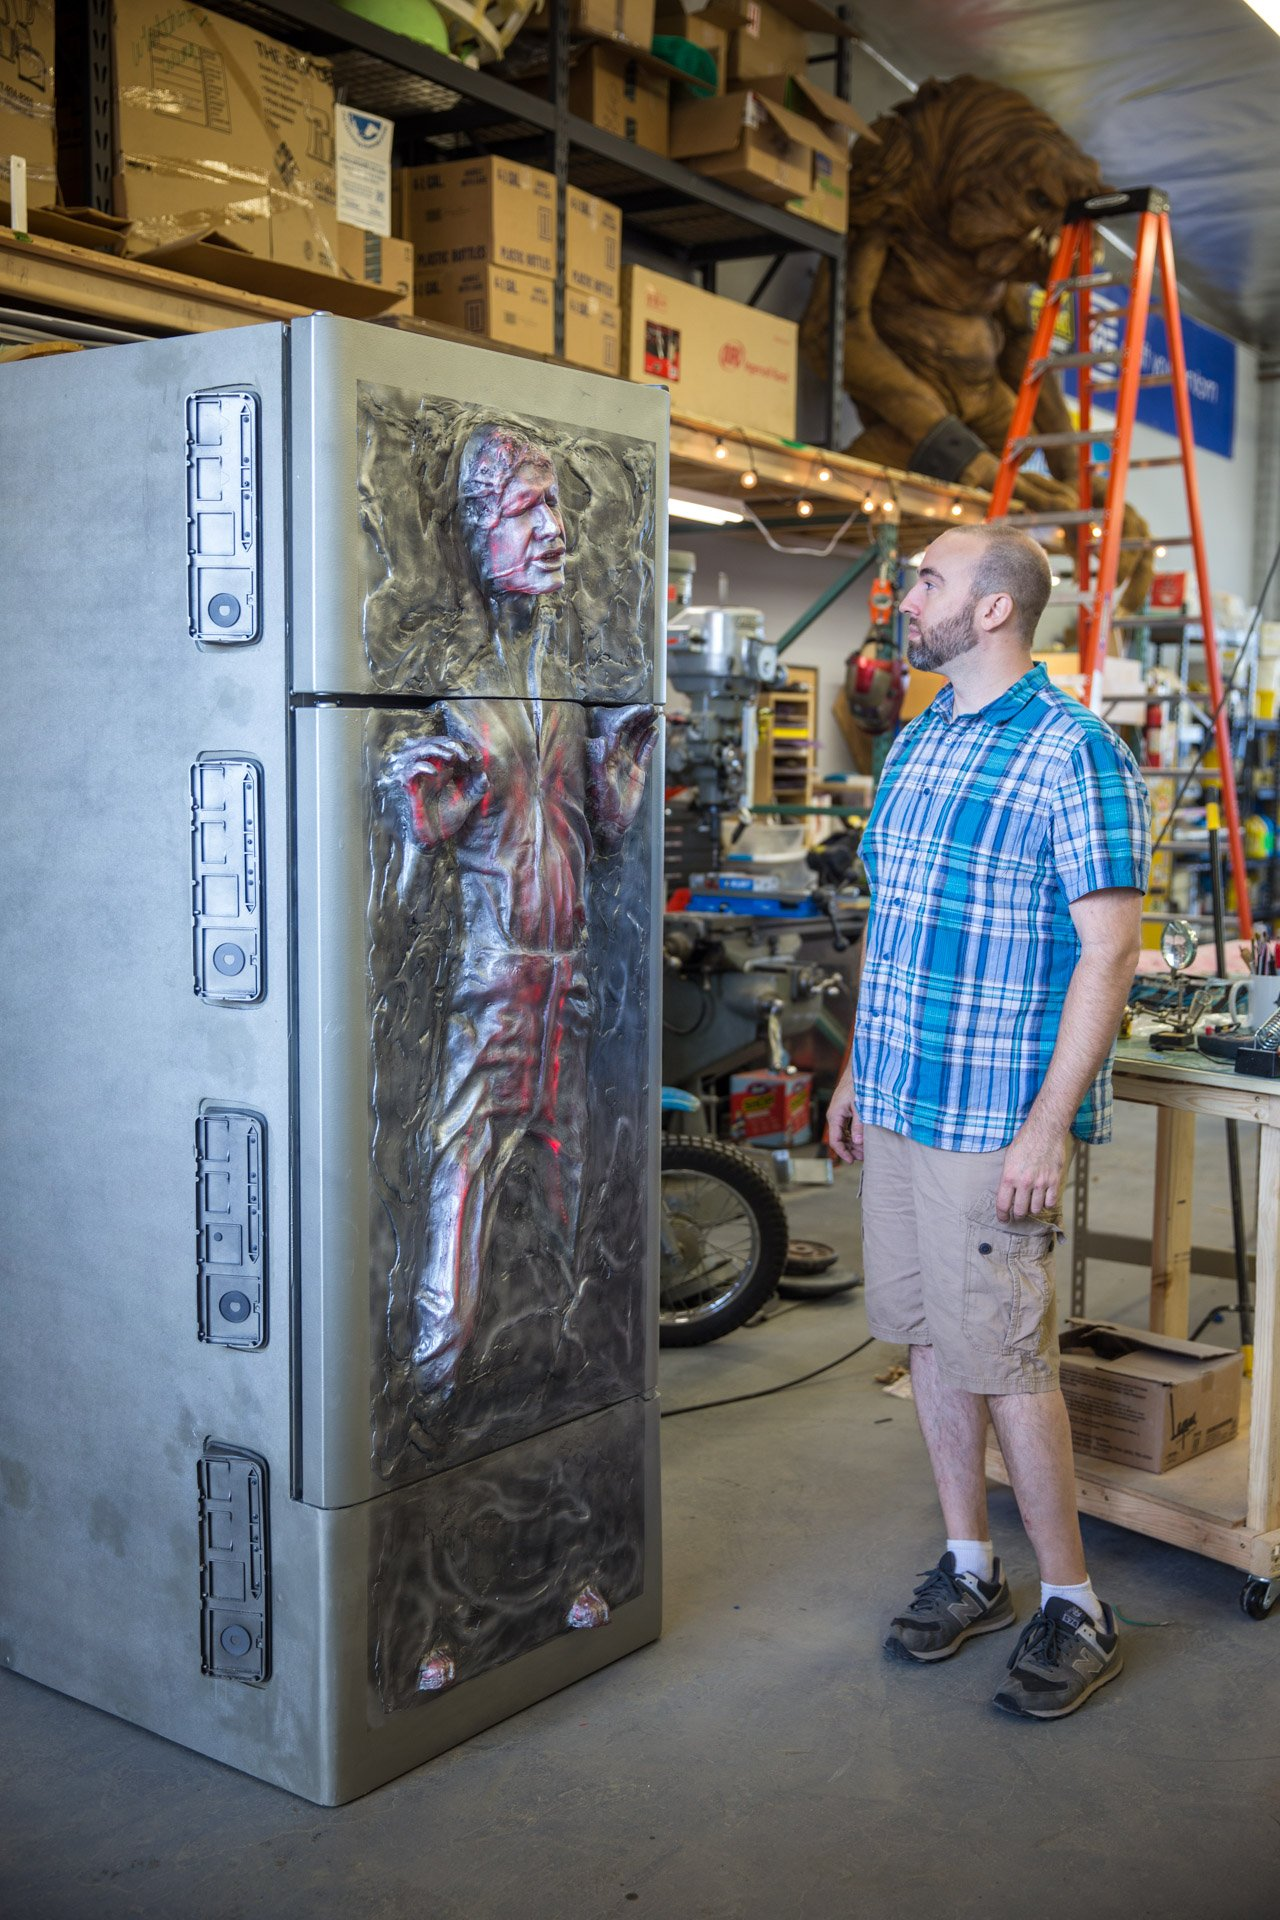 han in carbonite fridge